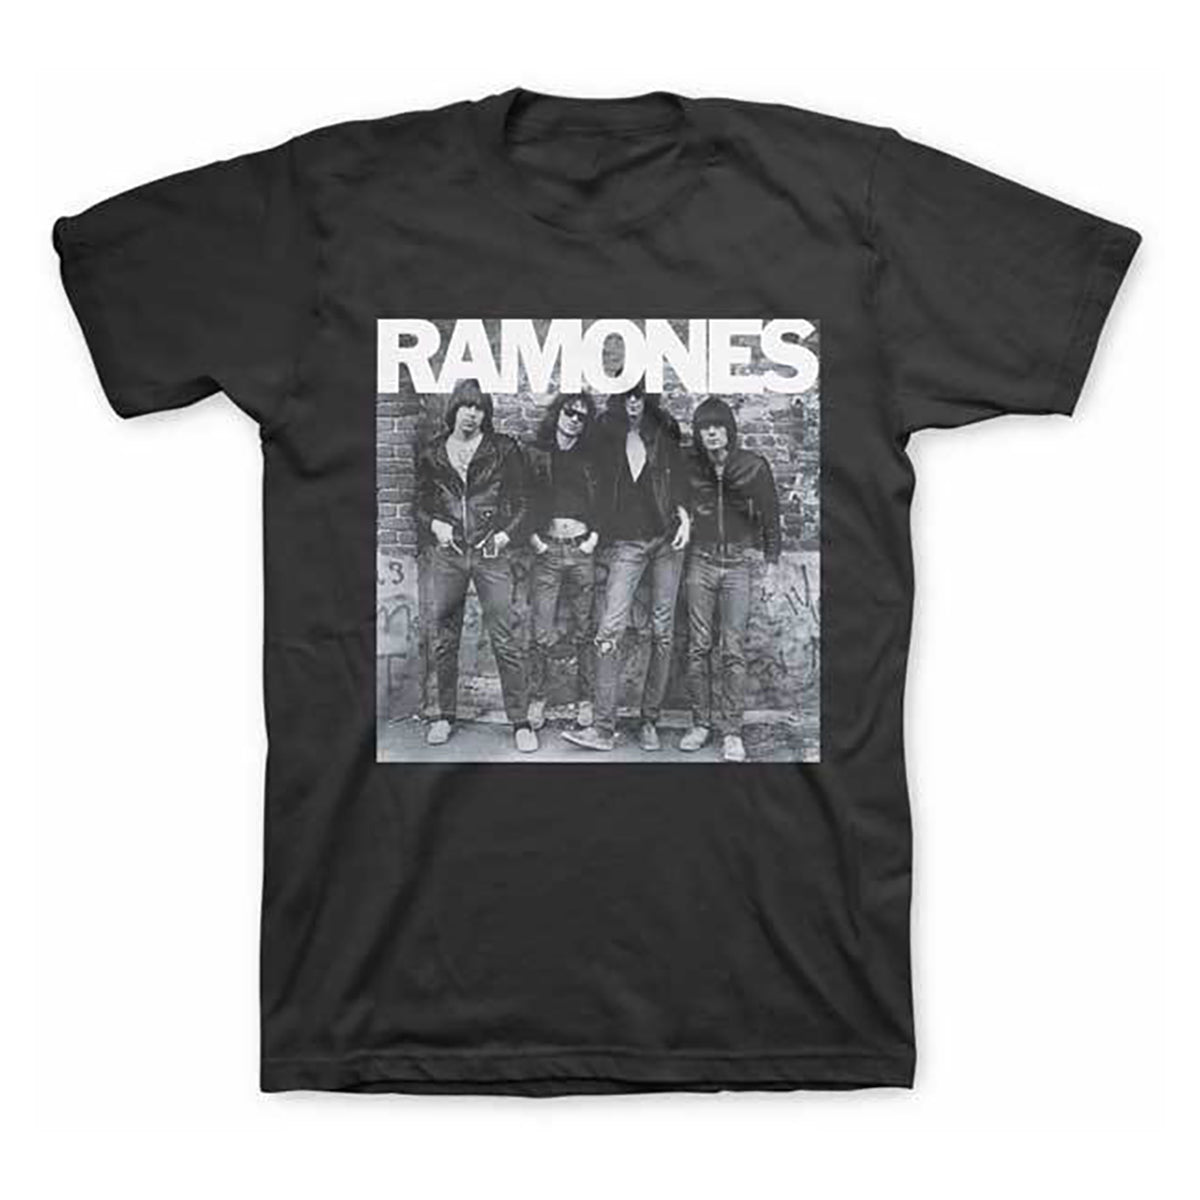 Ramones: 1st Album Cover Shirt - Black